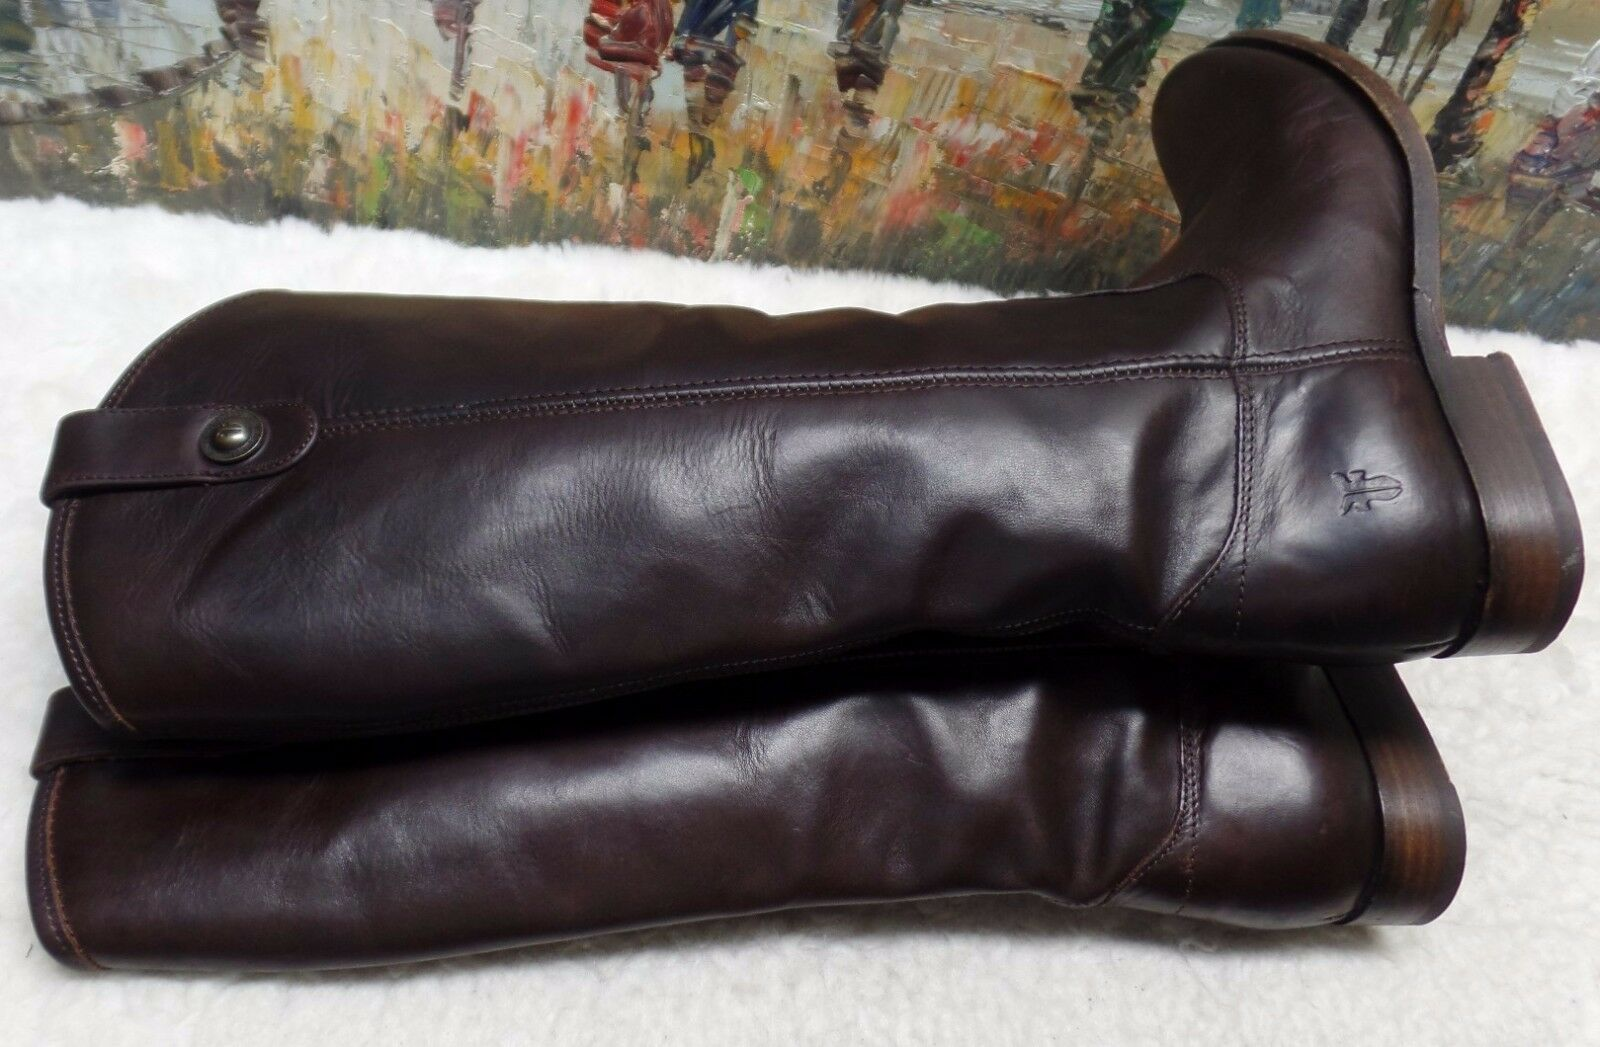 Frye 'Melissa Button' Stiefel in braun Leather - Größe Größe Größe 7B -  368 3c4723